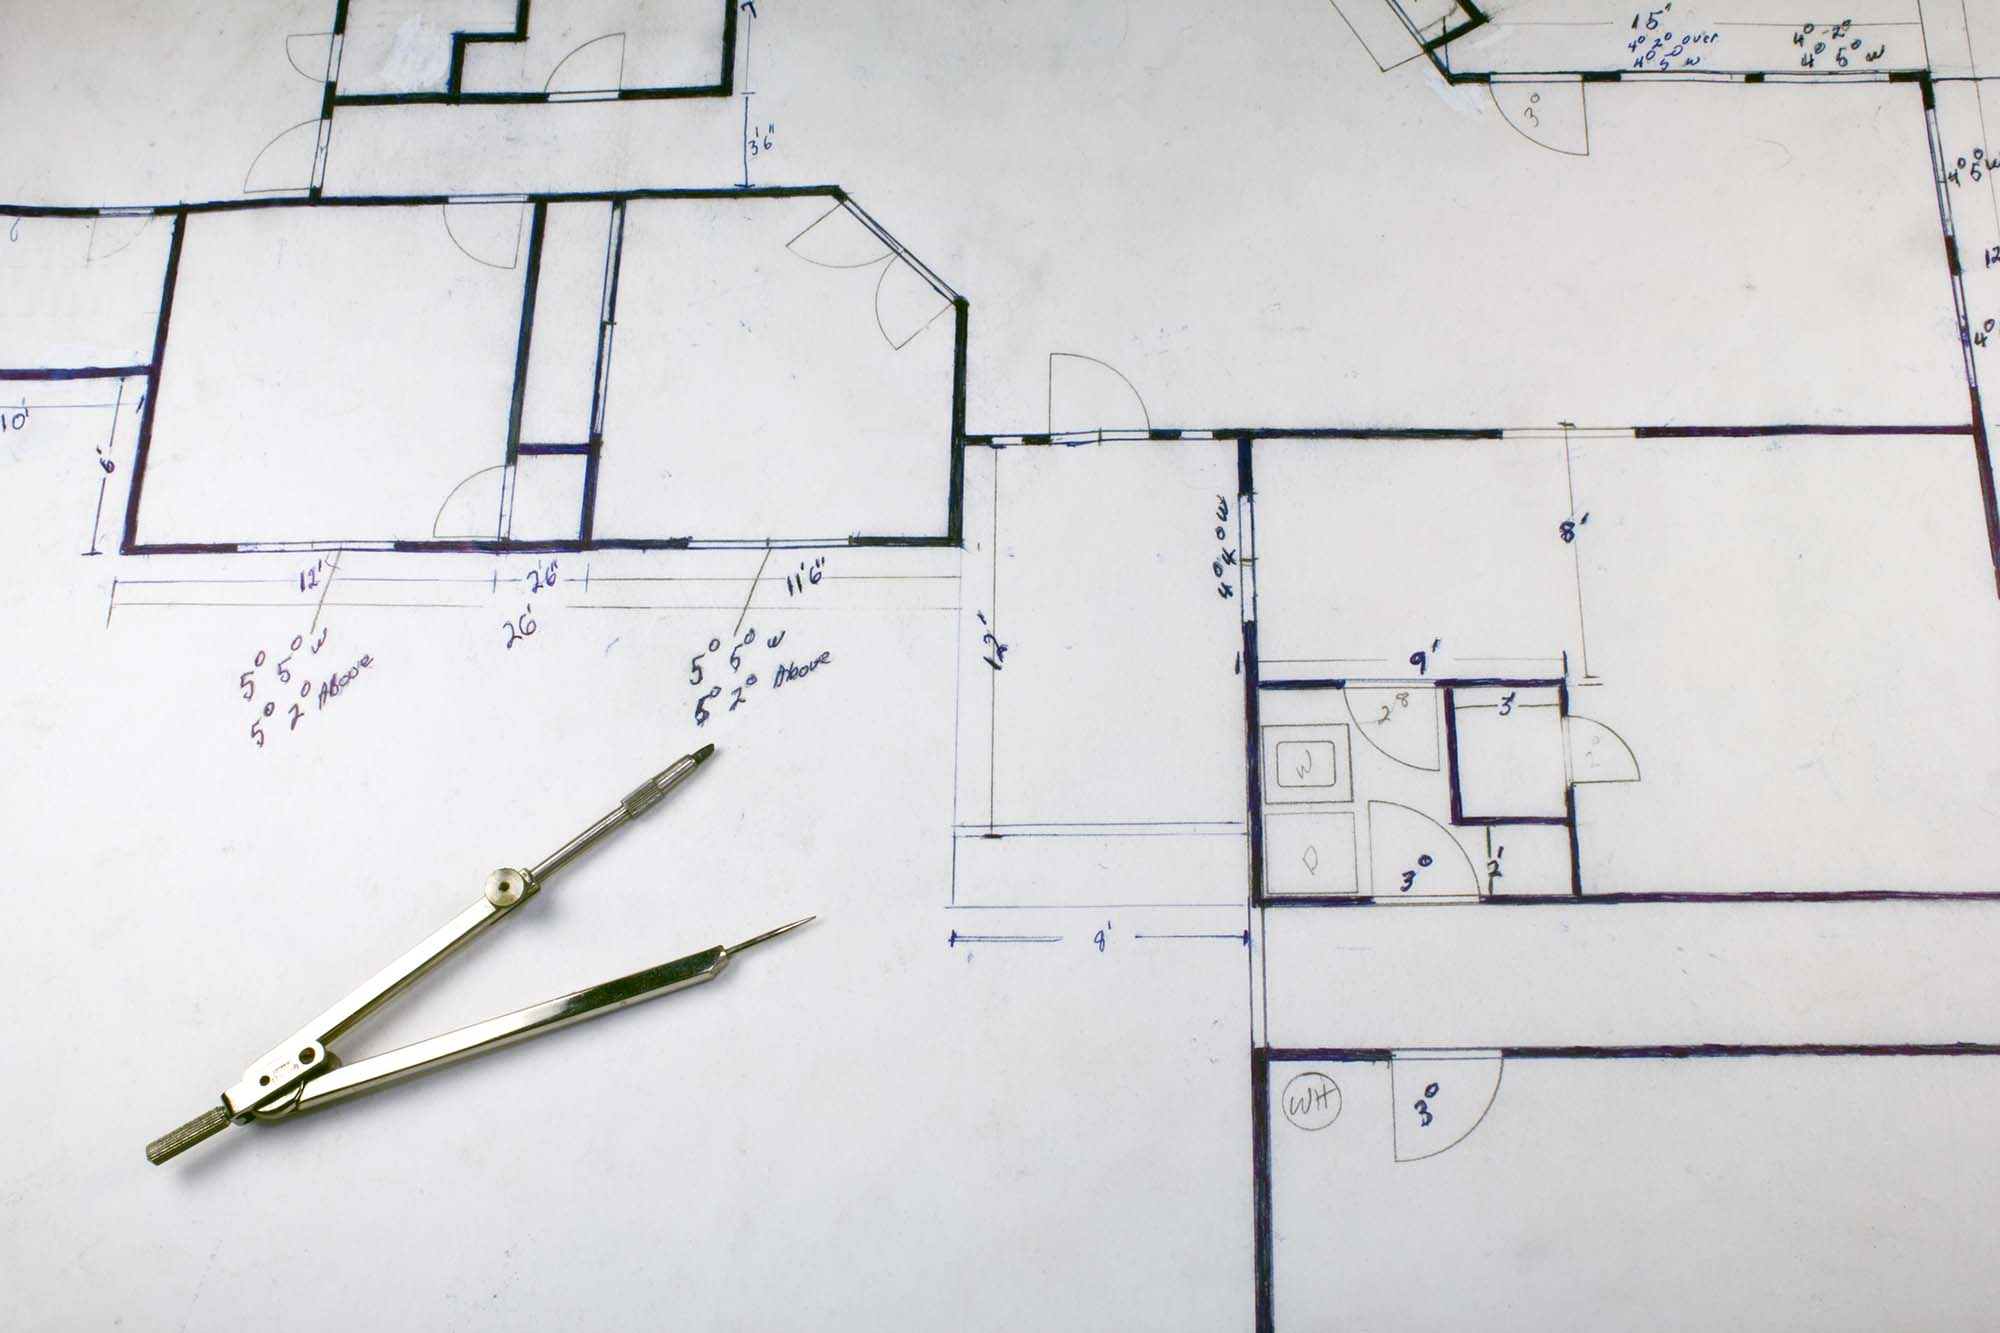 House building plans with compass and measurements